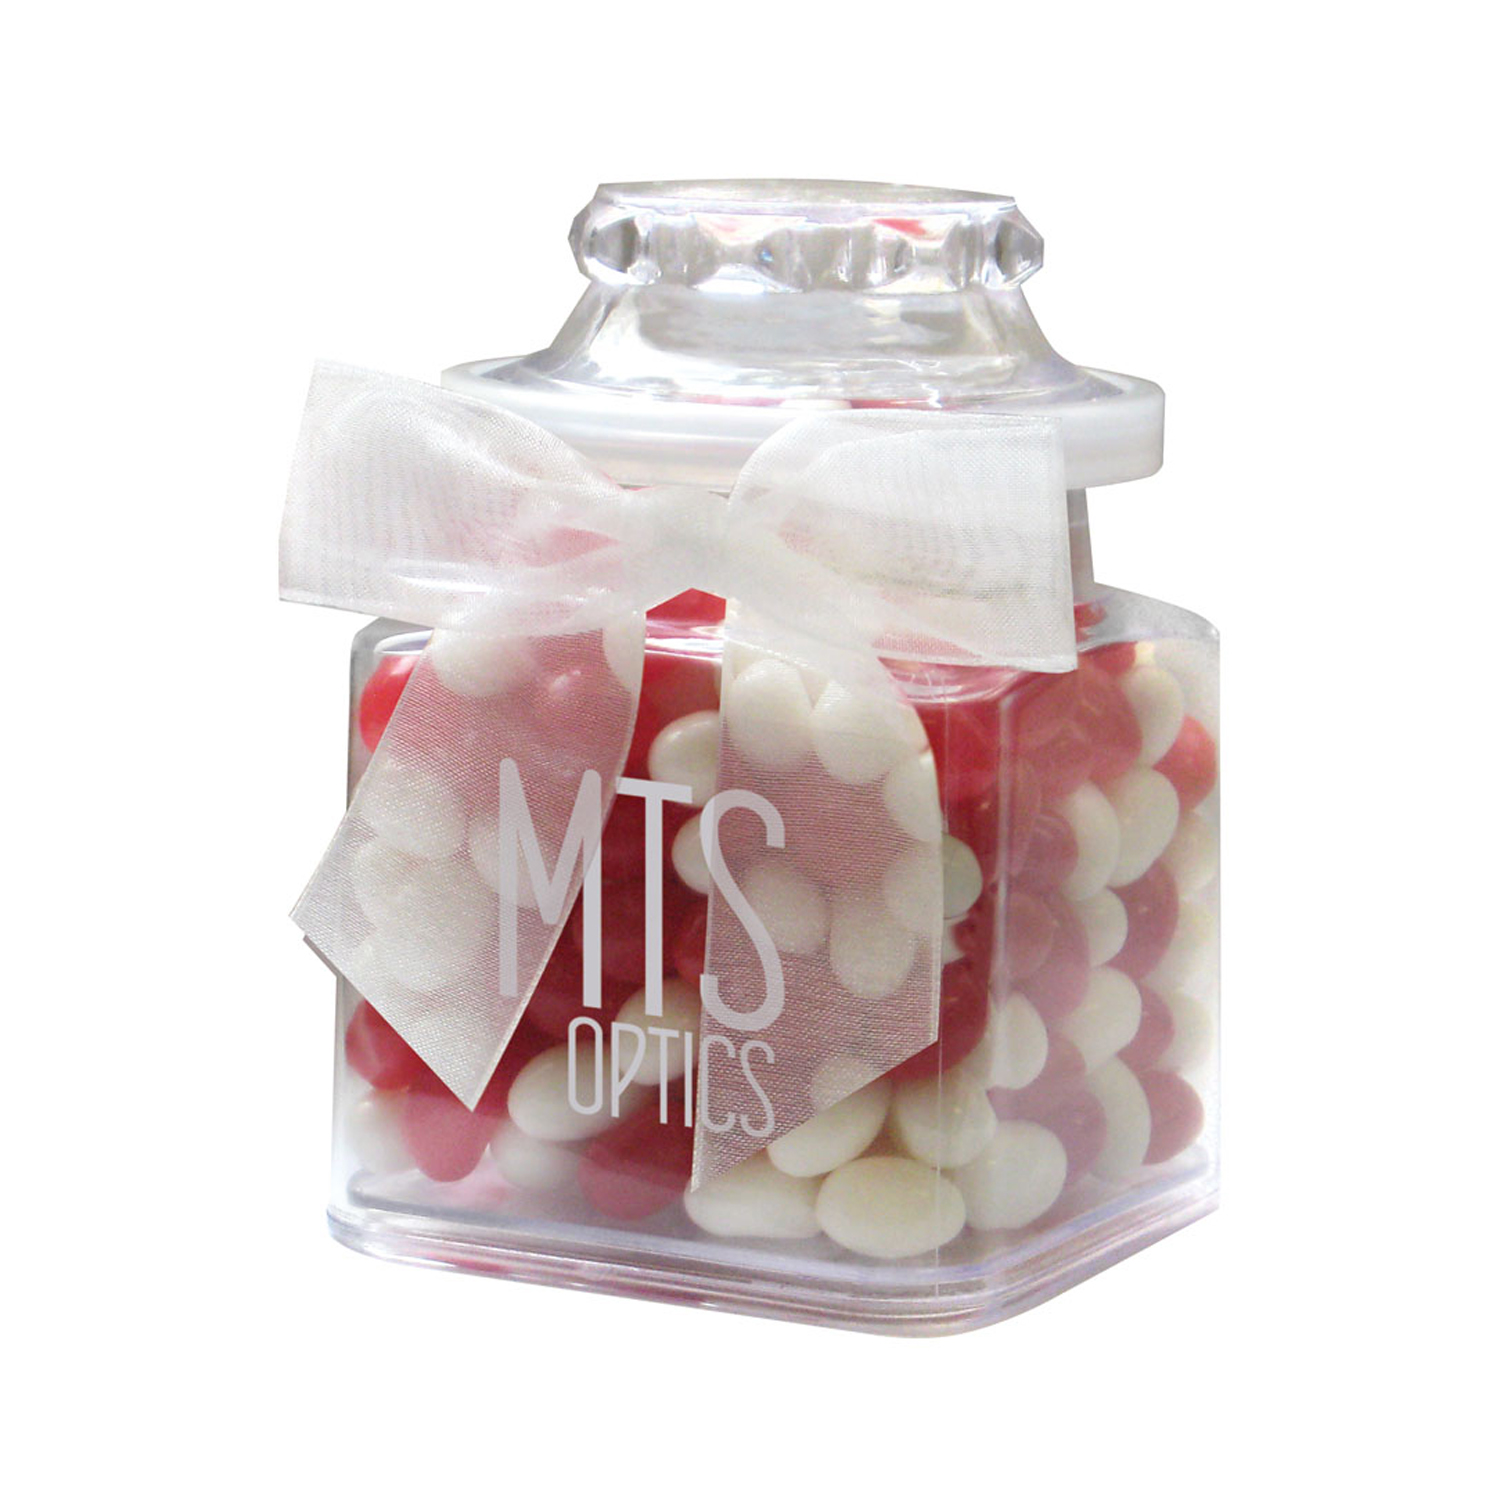 Gourmet Greetings in a Jar!, P208-JBEL, One Colour Imprint